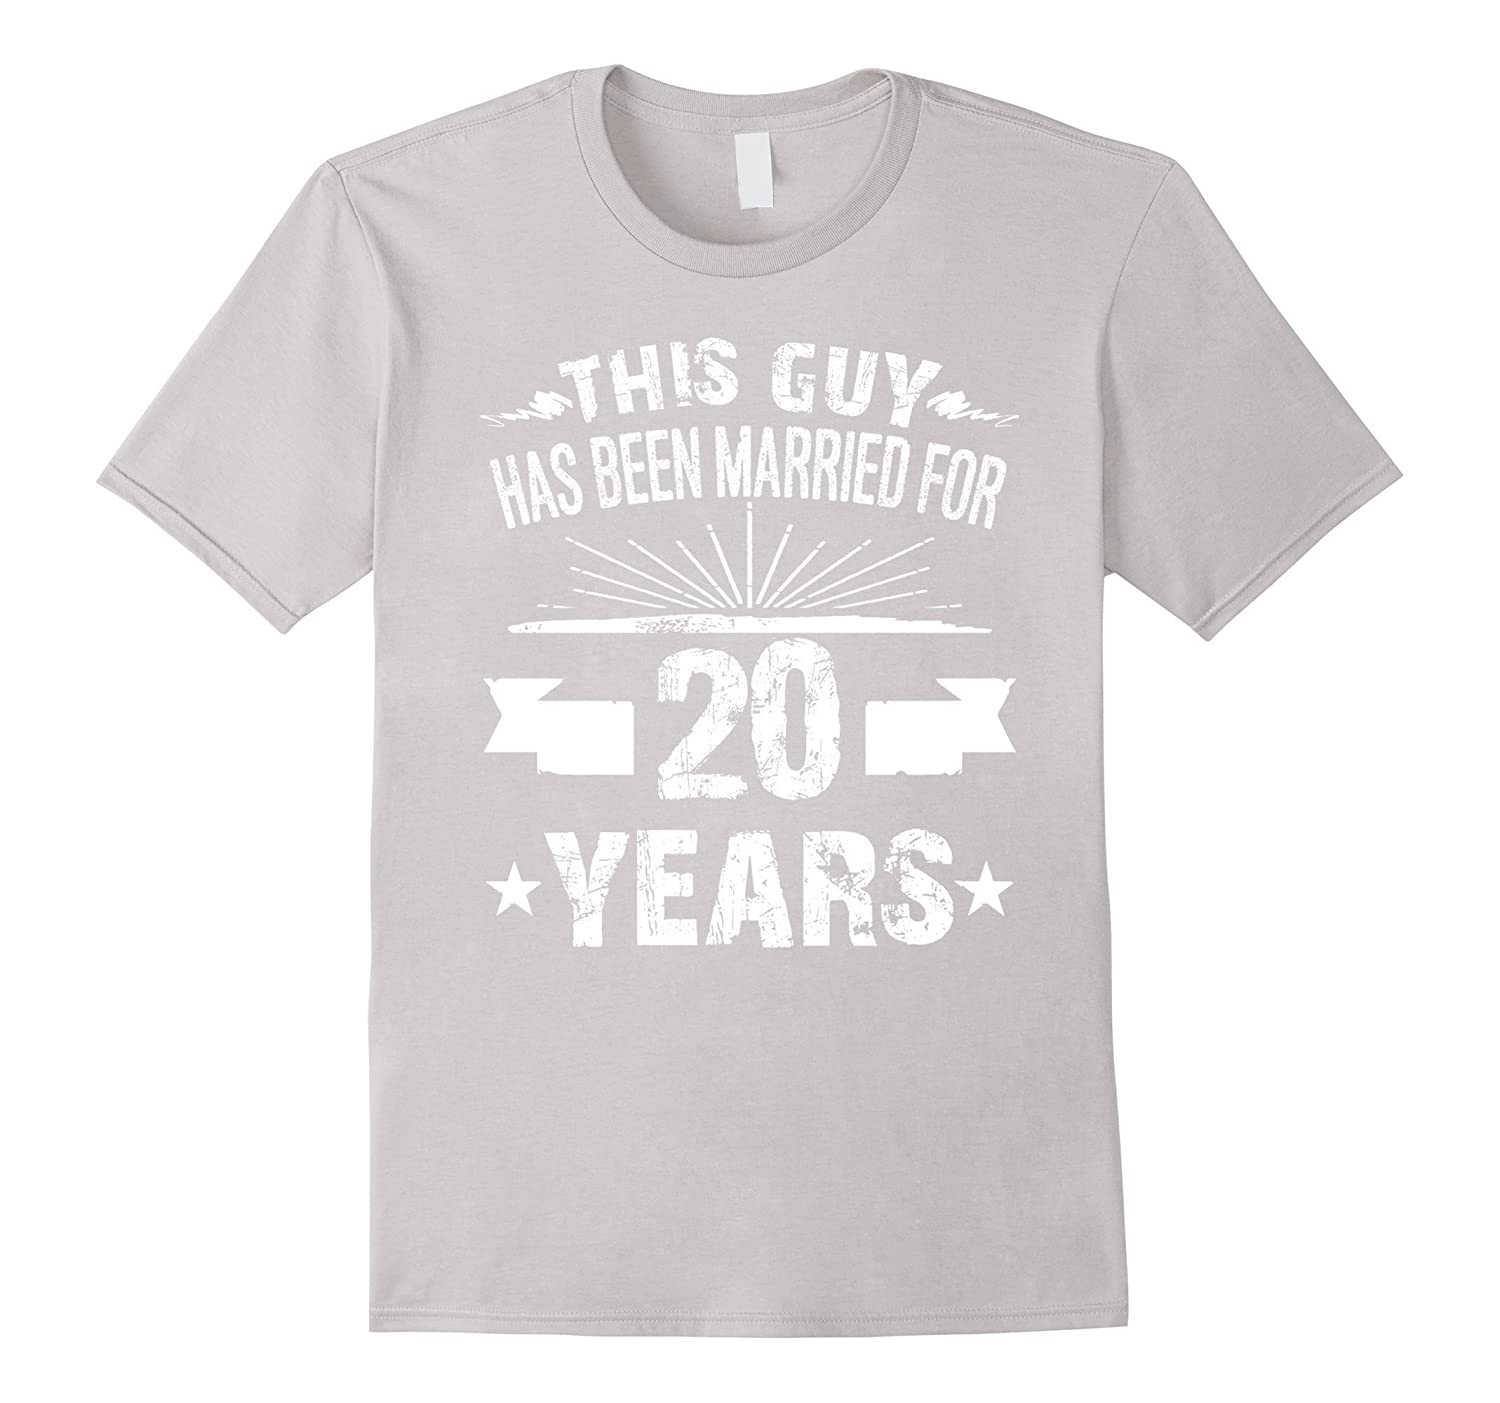 20th Wedding Anniversary Gifts 20 Year Shirt For Him Goatstee